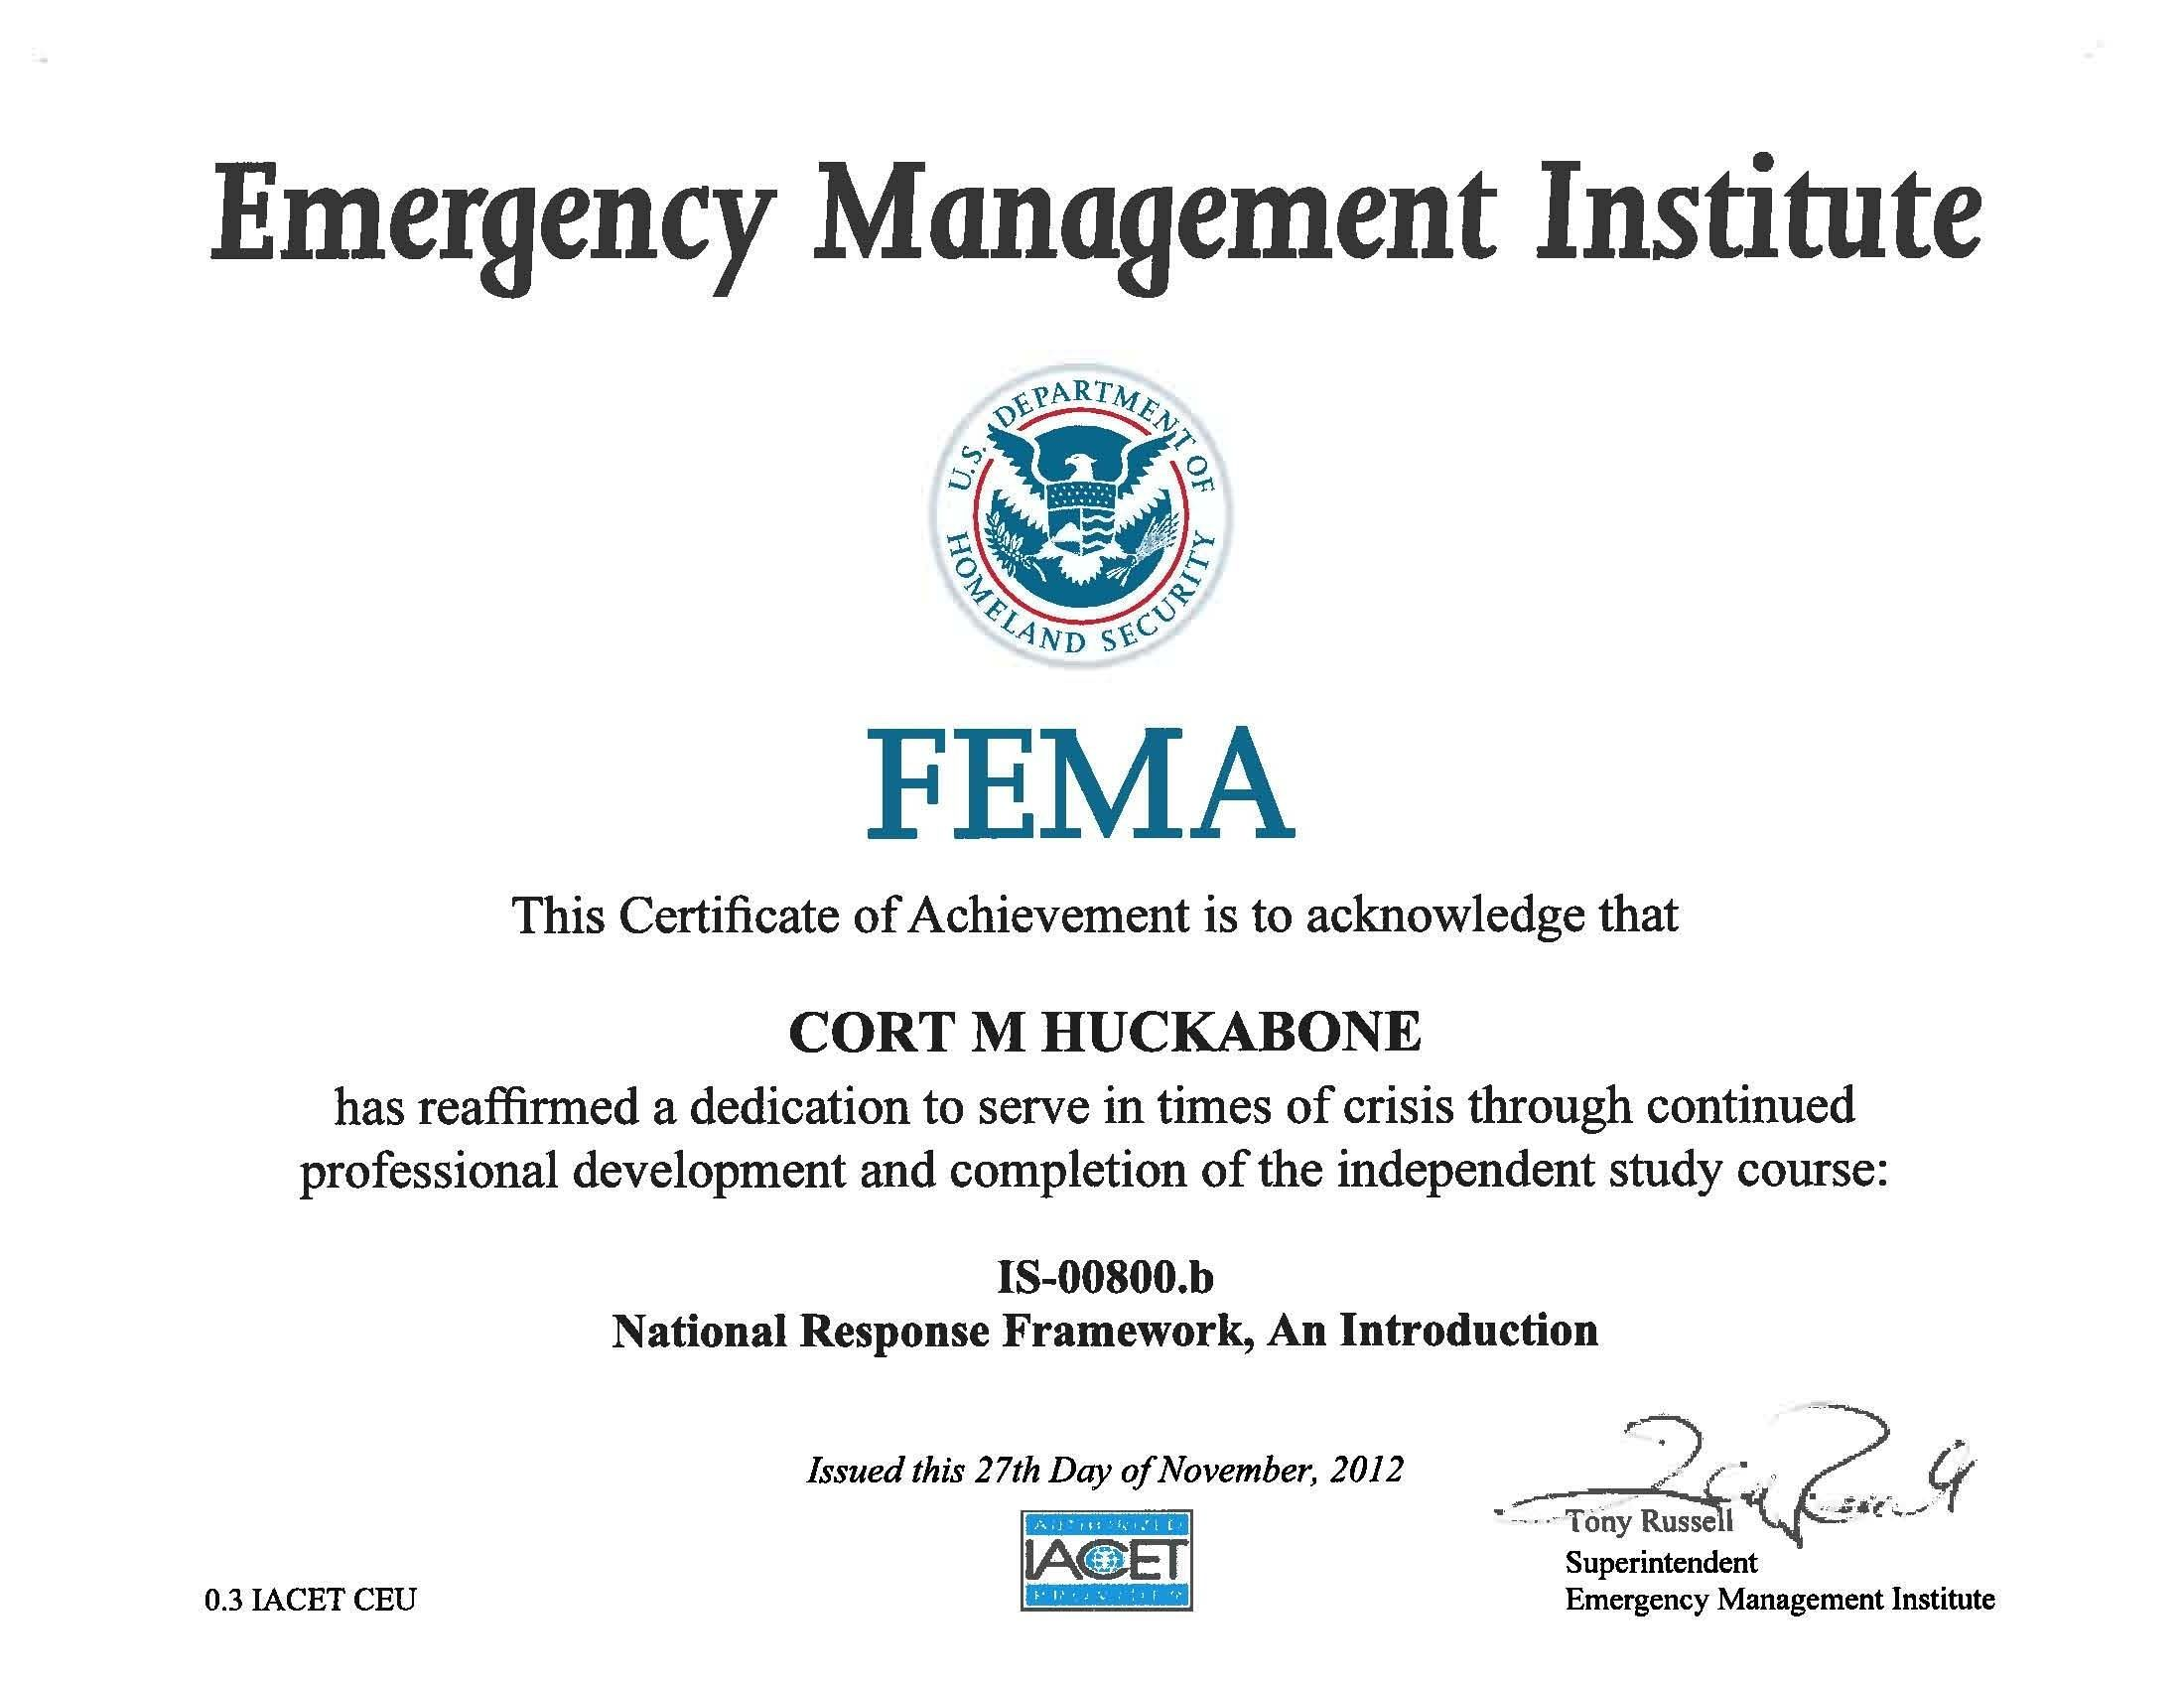 Fema 800 certification college degree certifications pinterest fema 800 certification xflitez Image collections